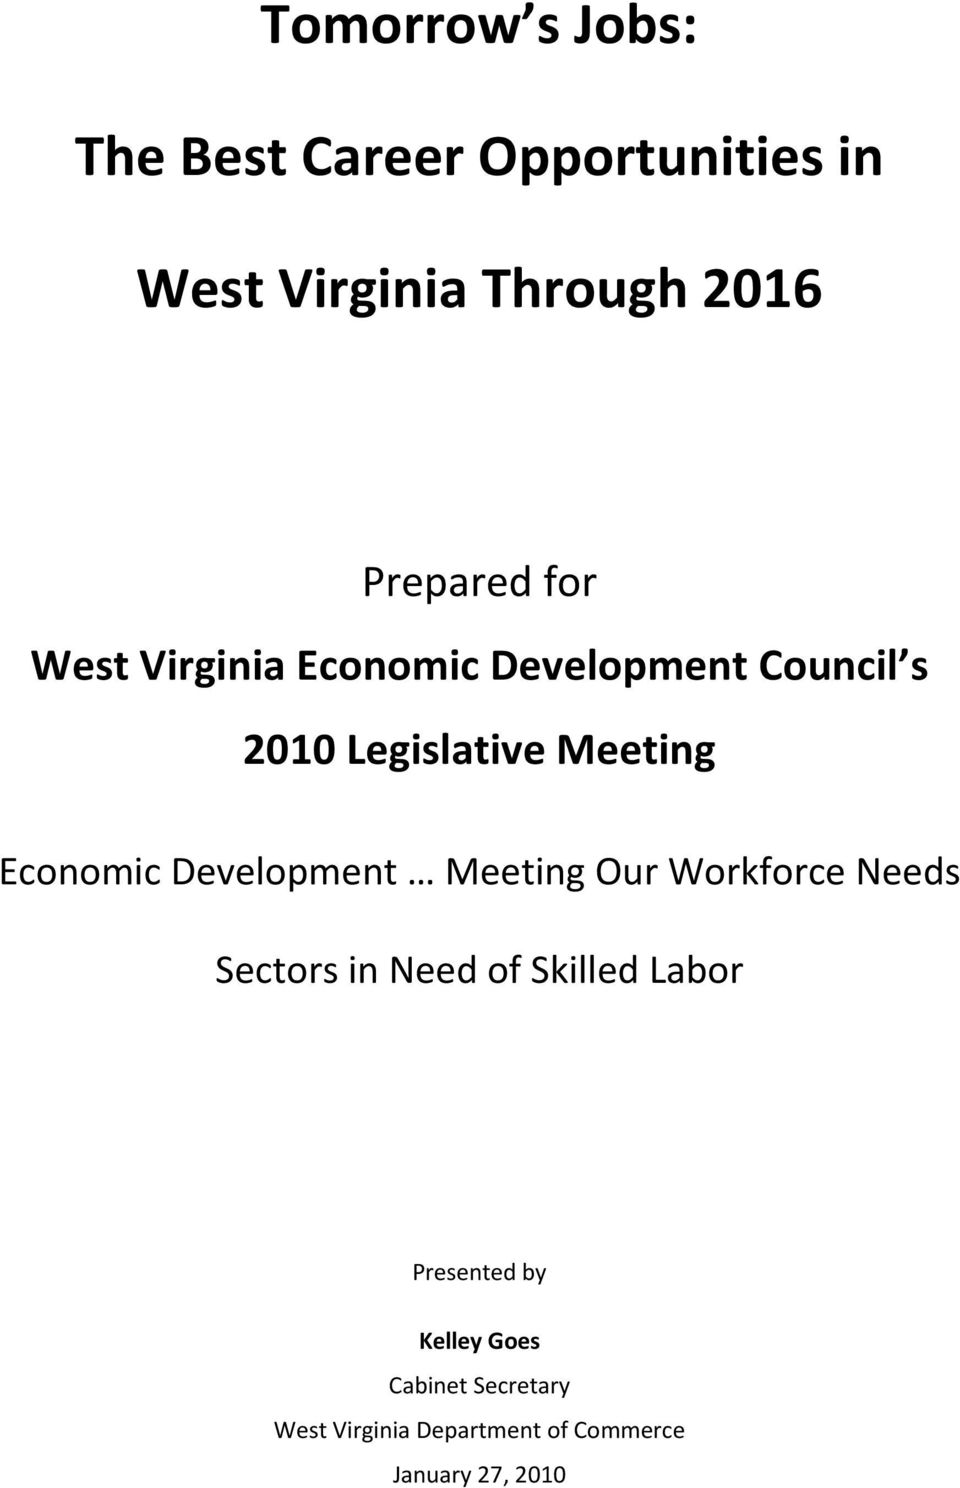 Economic Development Meeting Our Workforce Needs Sectors in Need of Skilled Labor